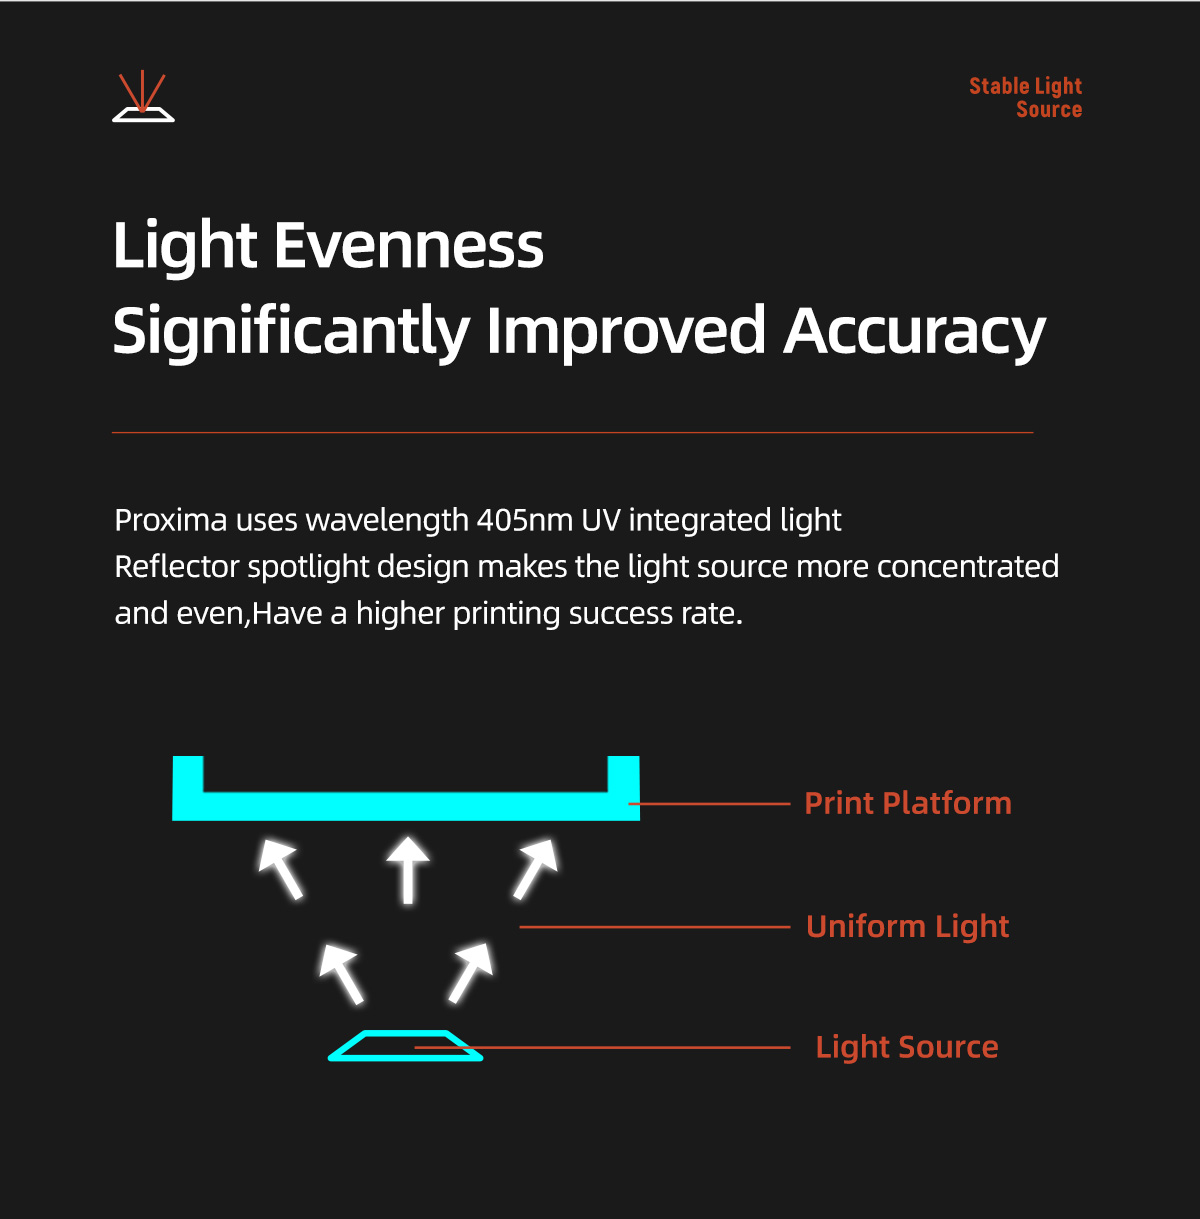 Proxima uses wavelength 405nm UV integrated light Reflector spotlight design makes the light source more concentrated and even Have a higher printing success rate